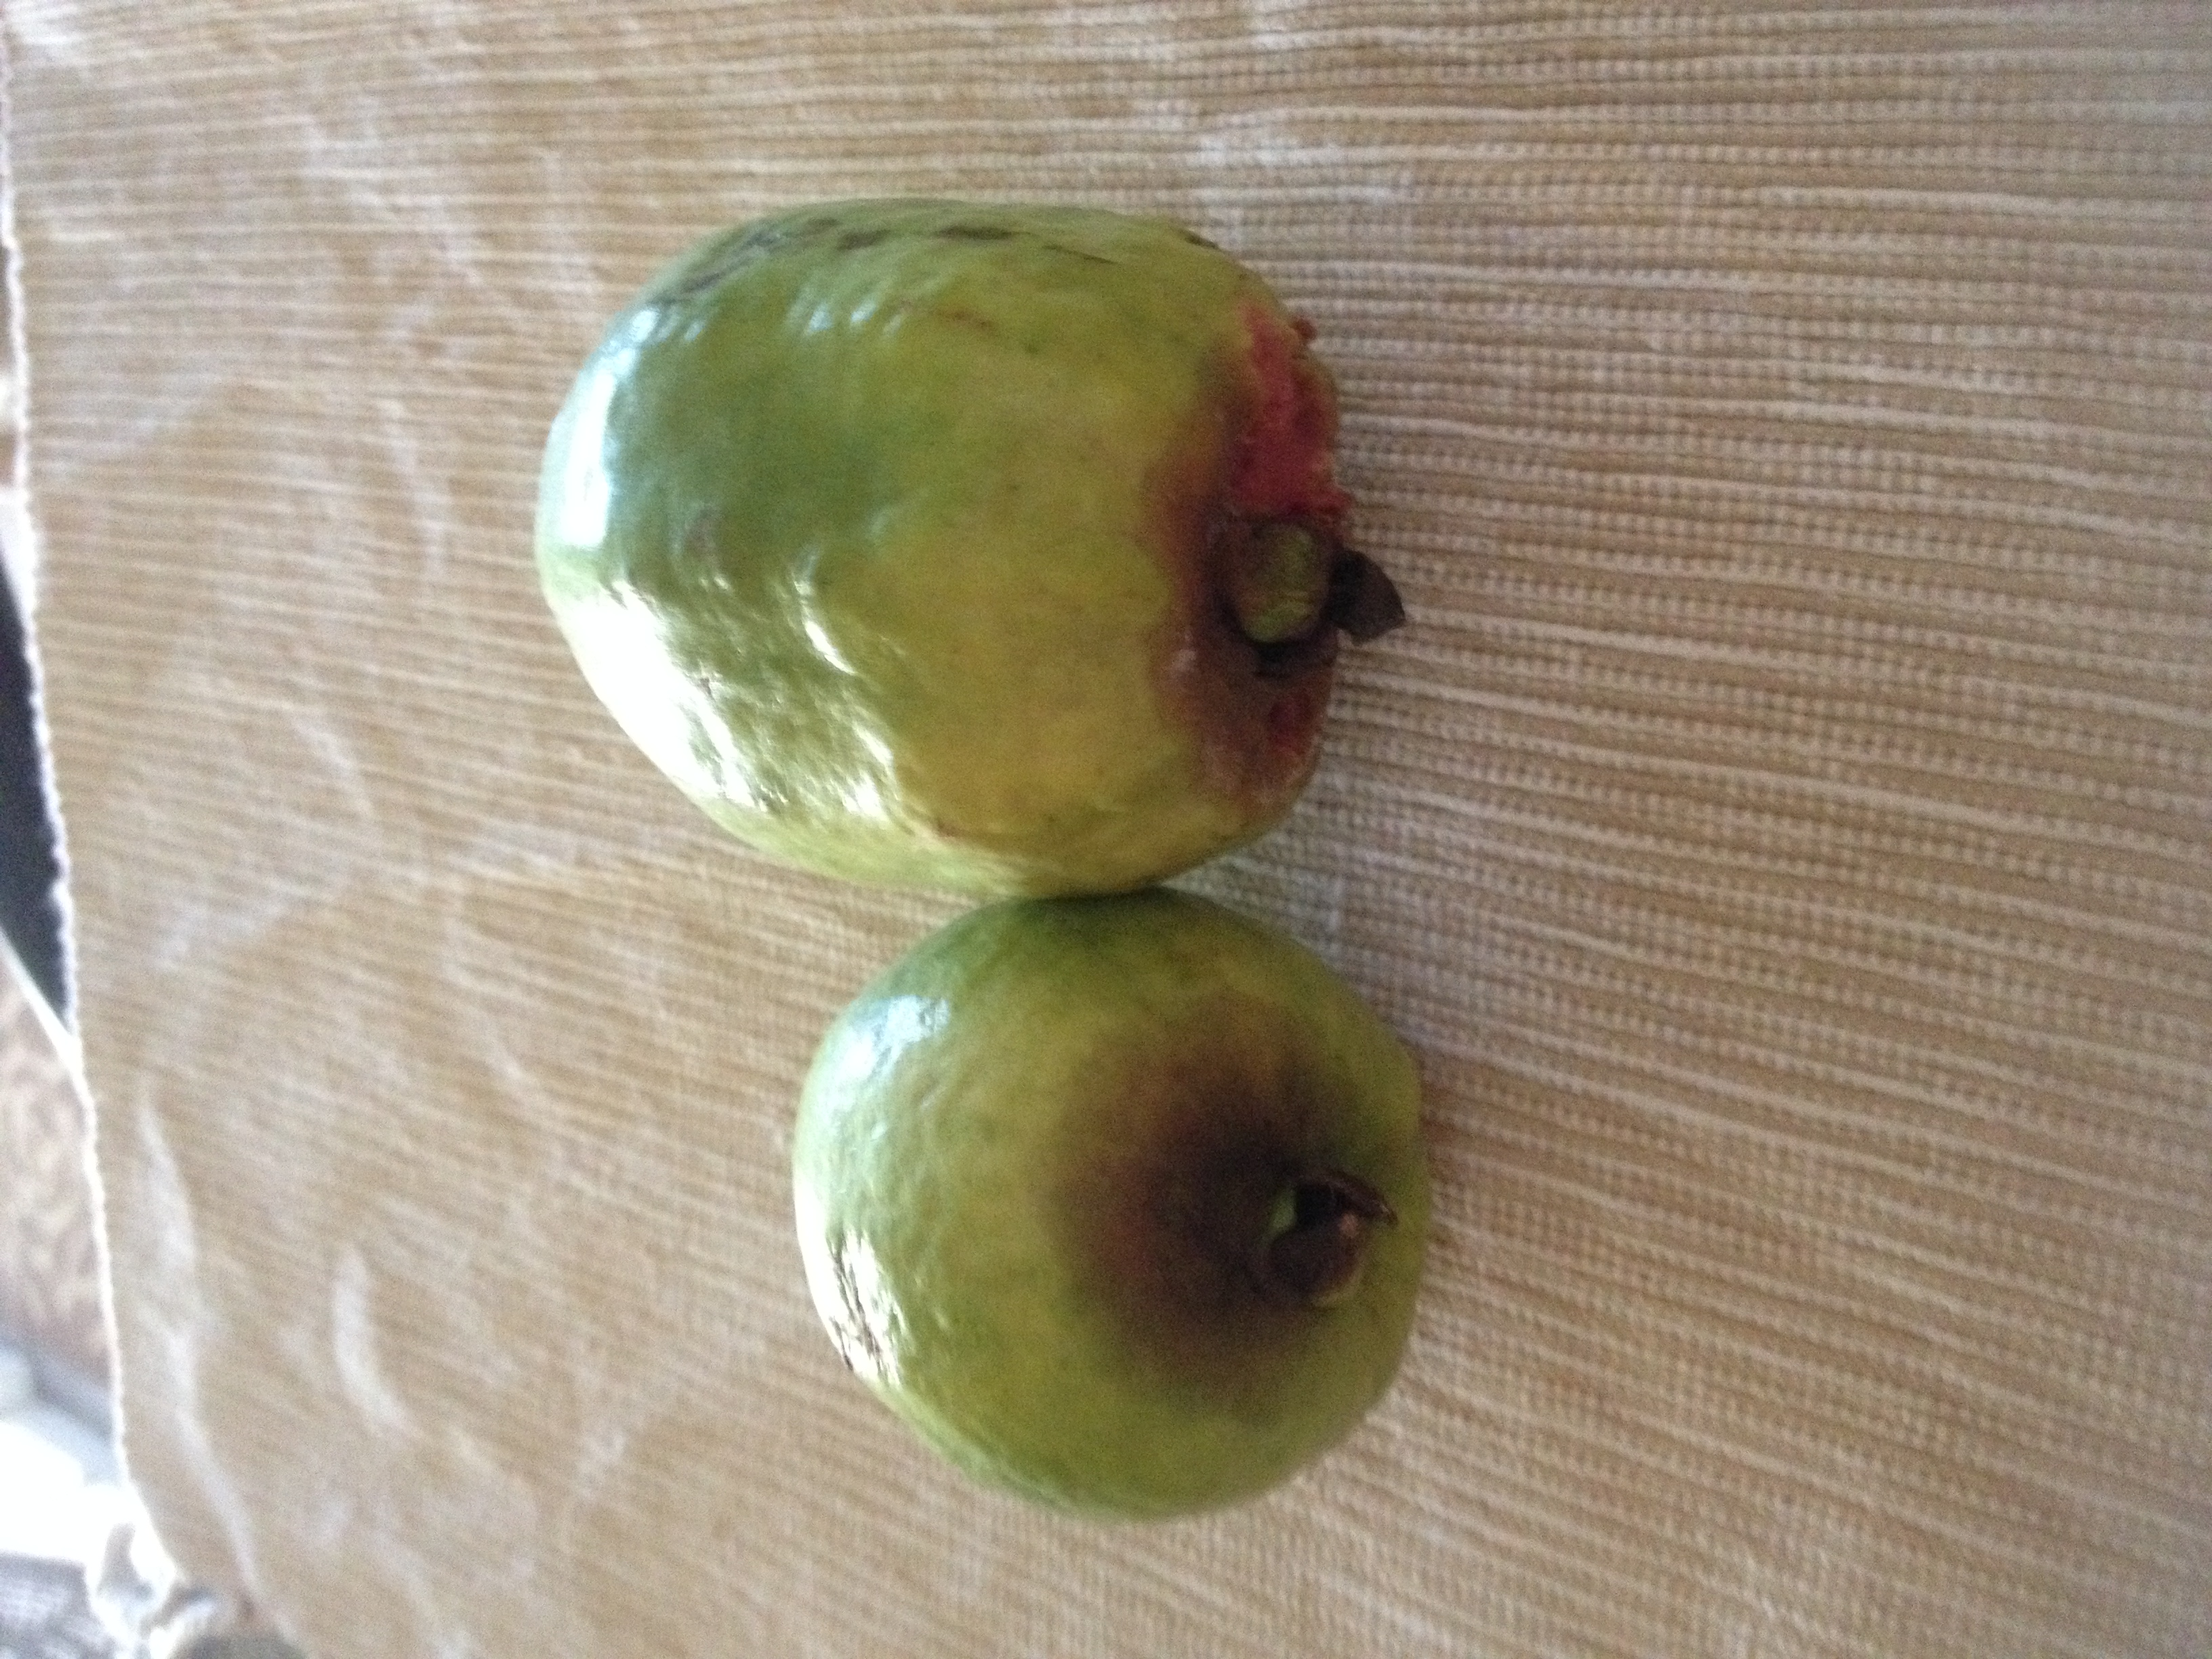 None of the guavas turn out perfect.